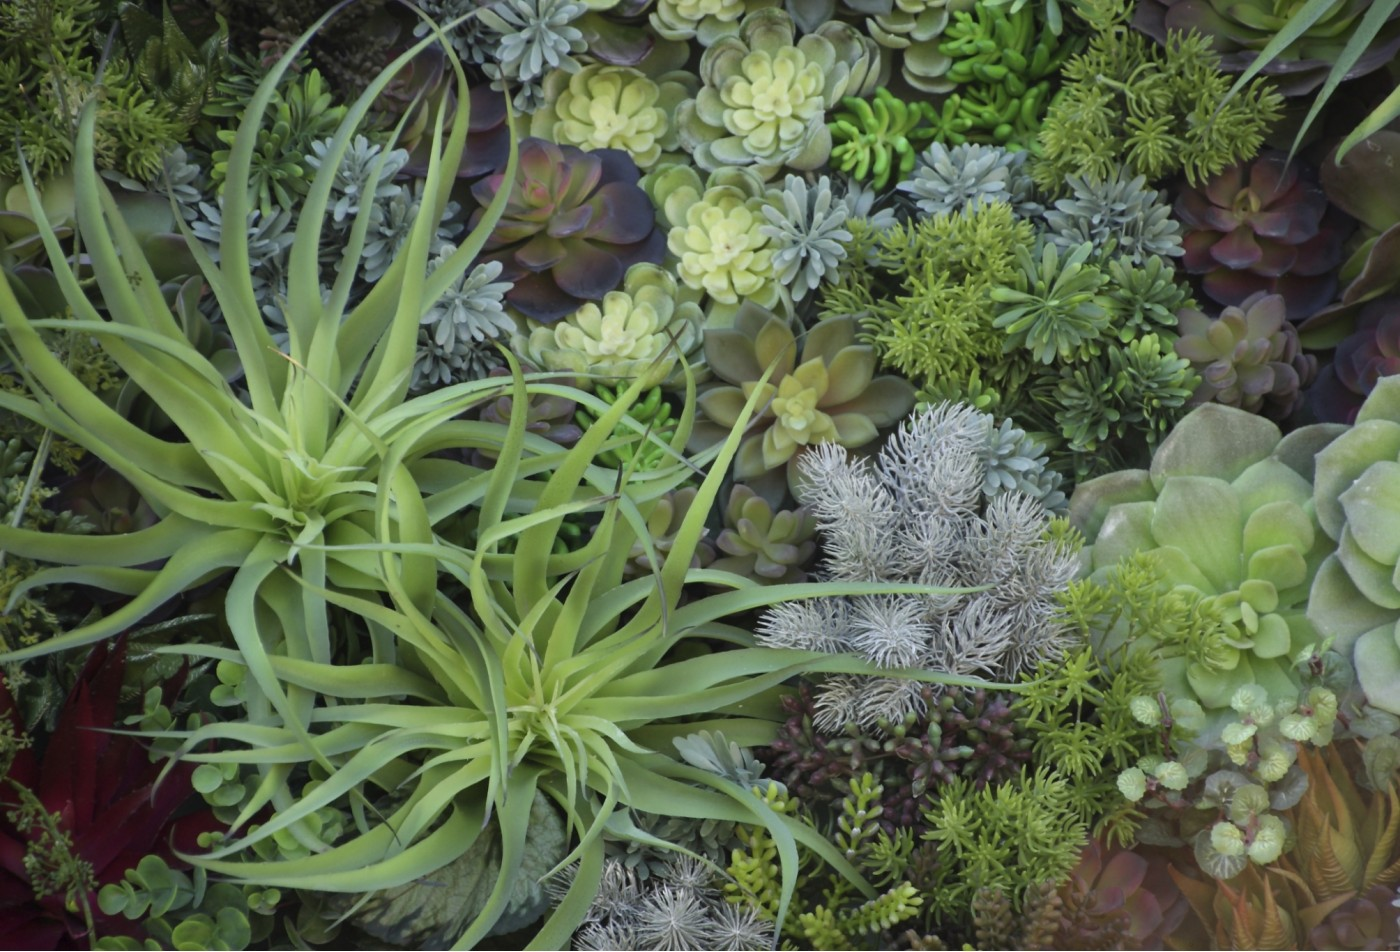 A grouping of green and yellow succulent plants.